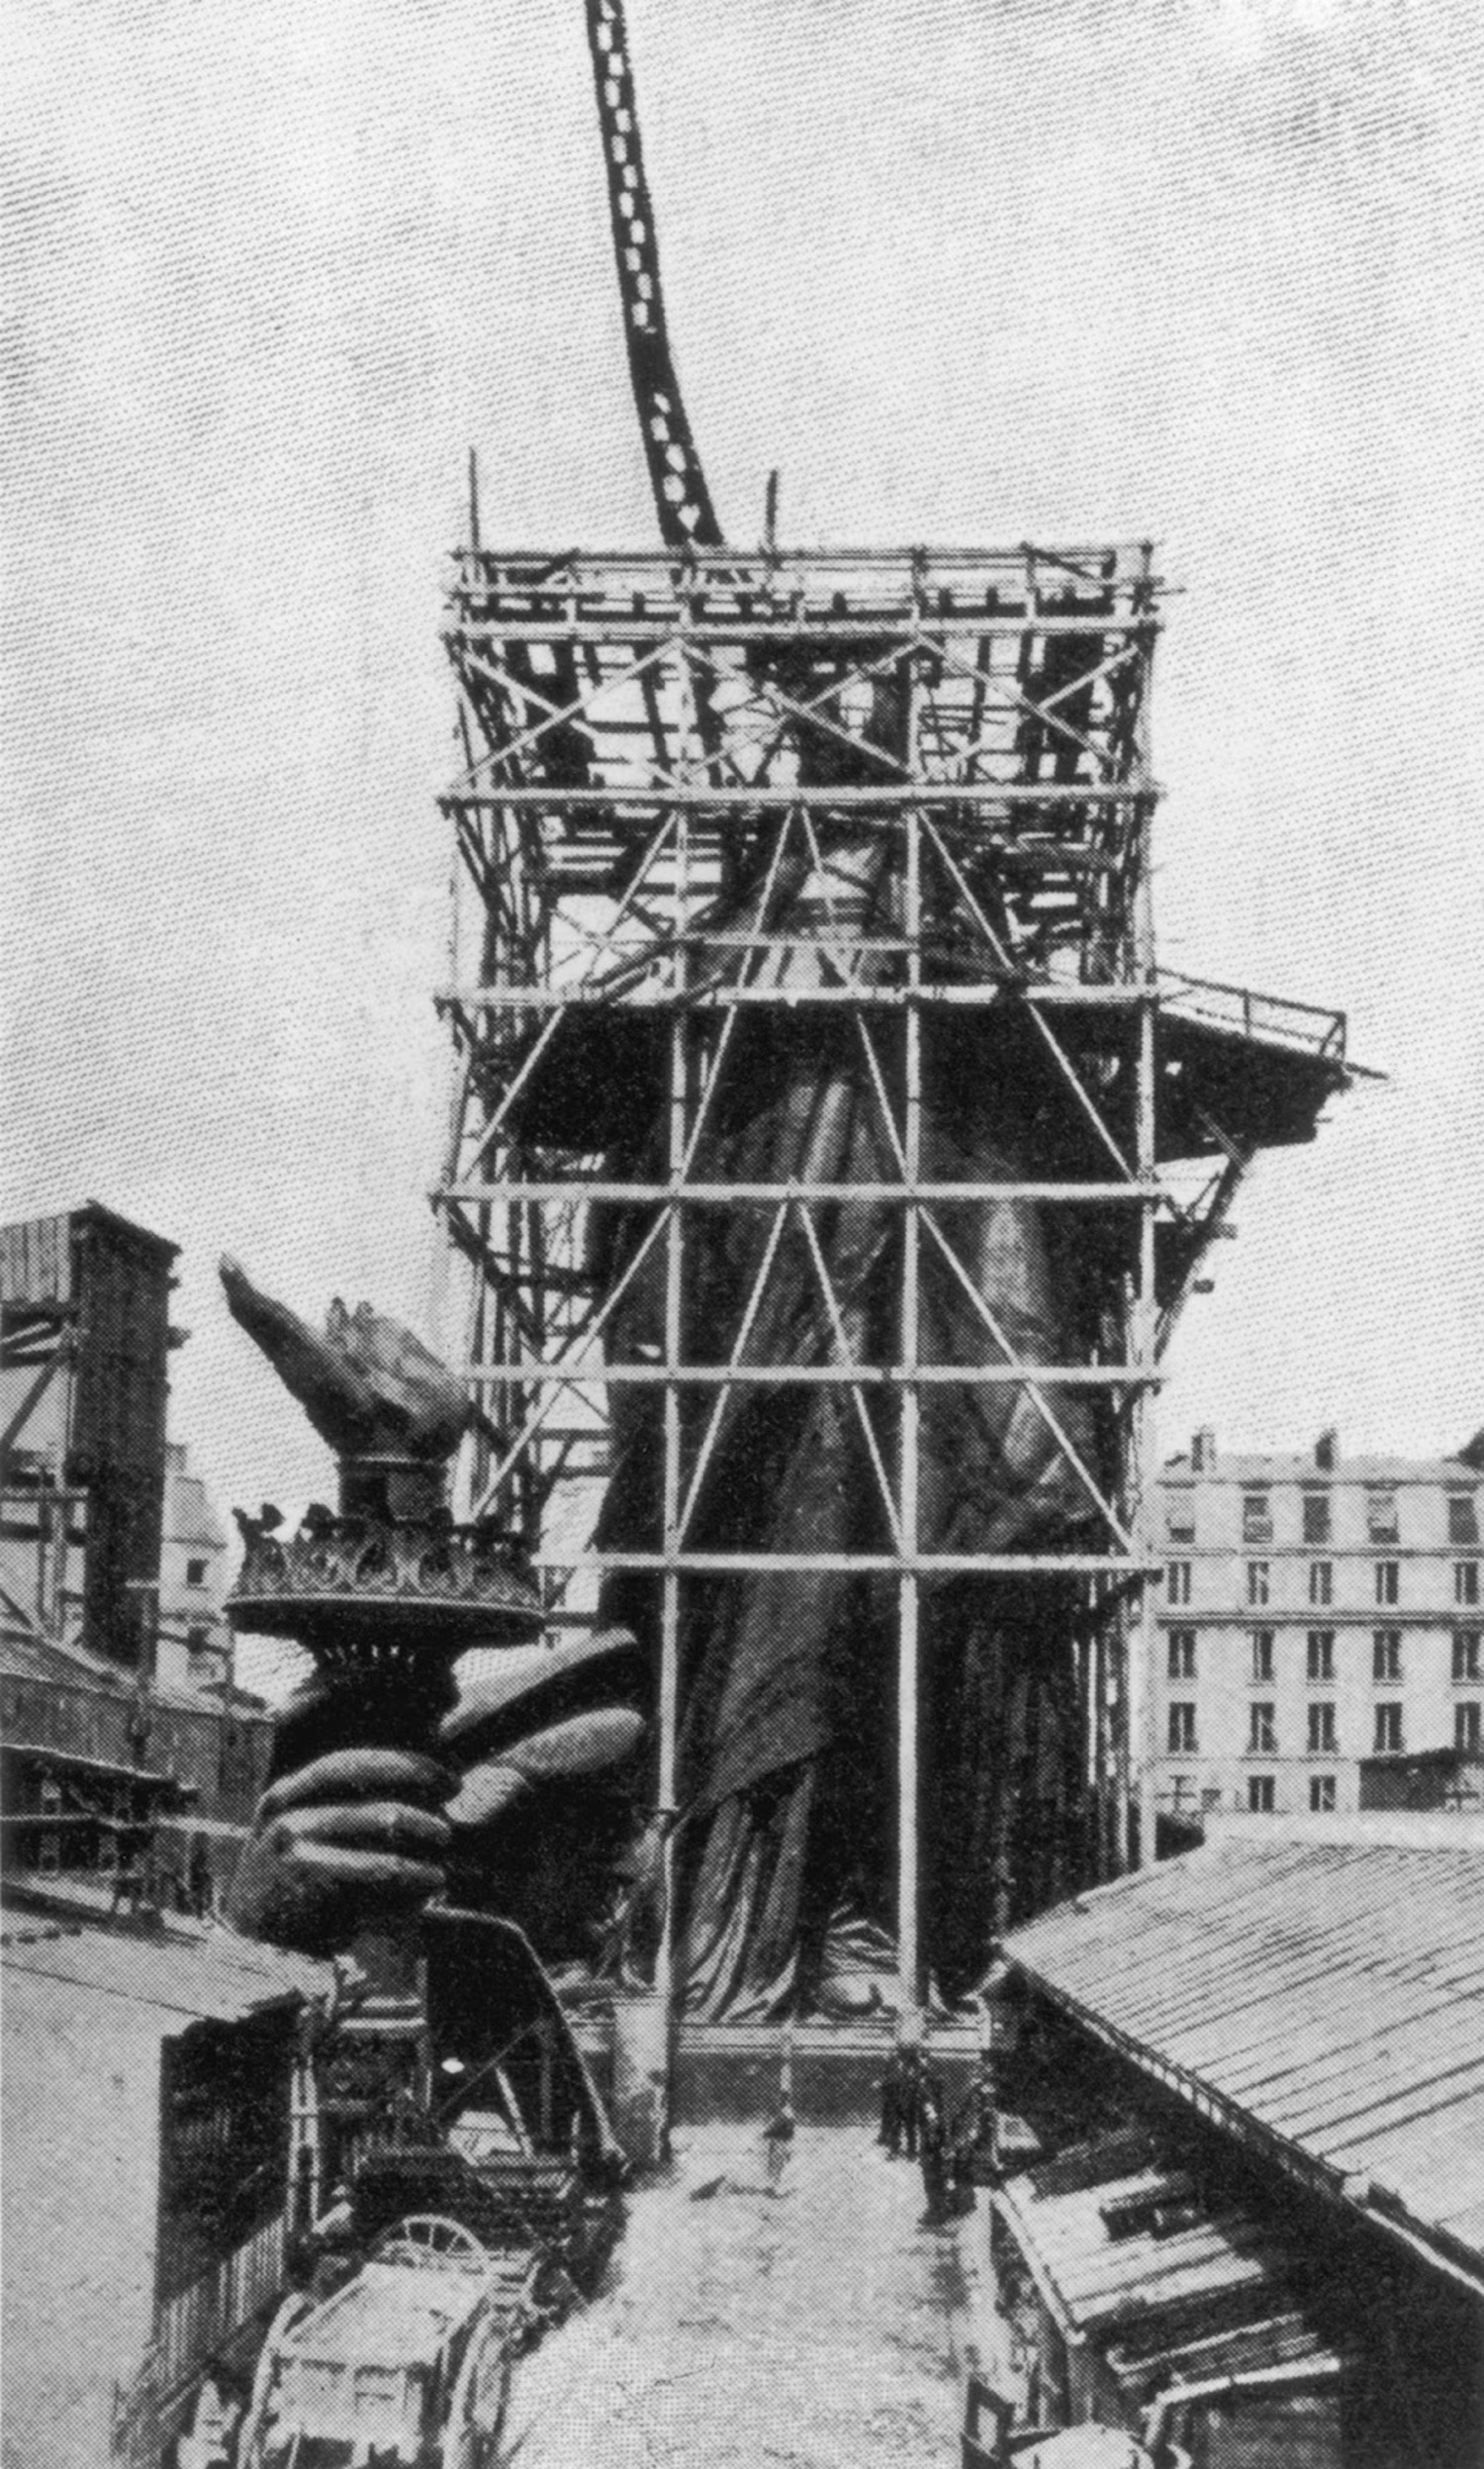 The framework for the right arm of the Statue Of Liberty during construction in Paris, circa 1885.